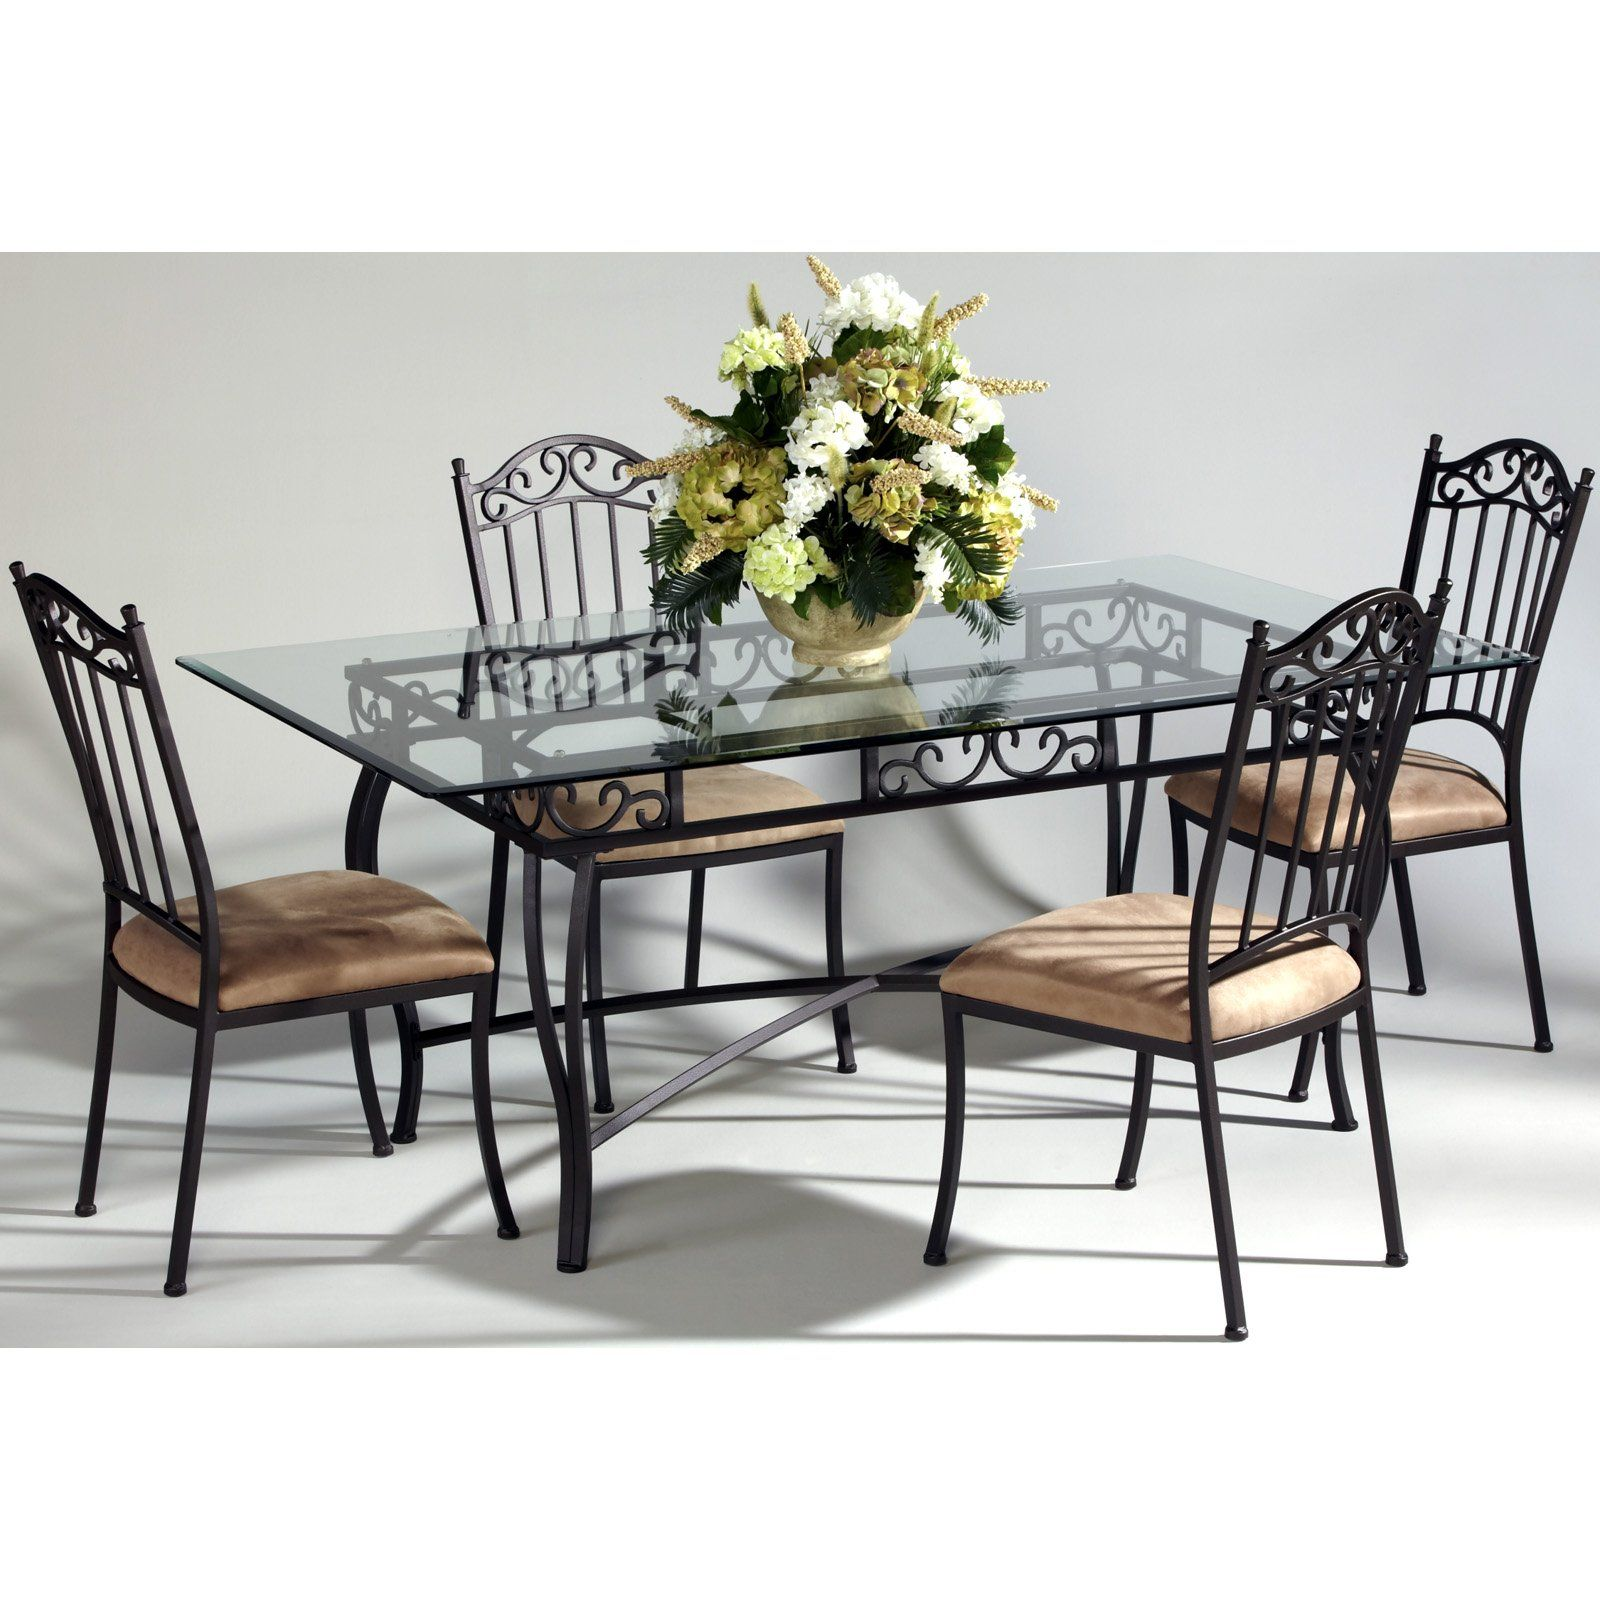 Have To Have It Chintaly Bethel 5 Piece Rectangular Wrought Iron